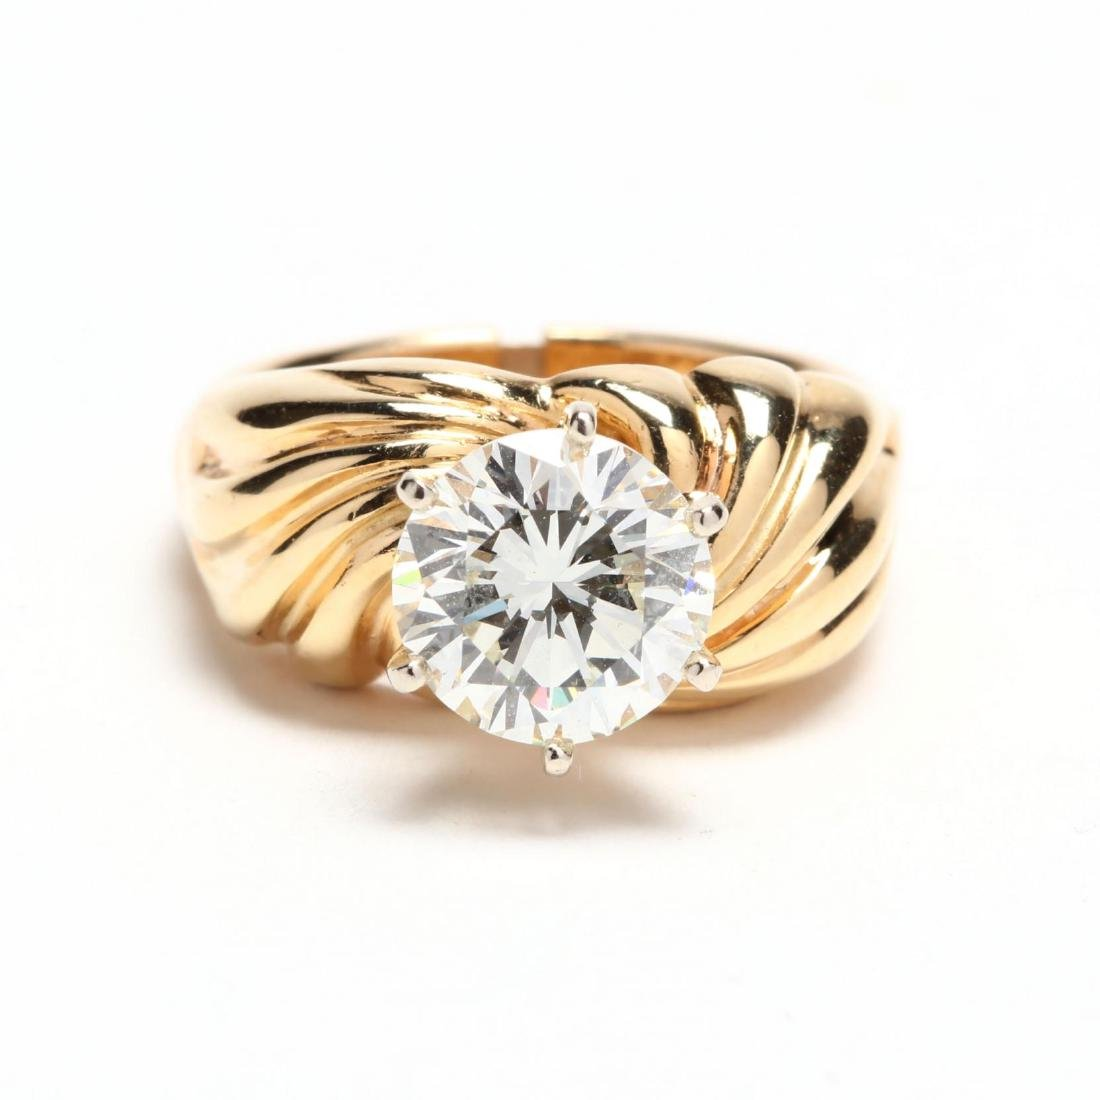 Unmounted Round Brilliant Cut Diamond with 14KT Gold